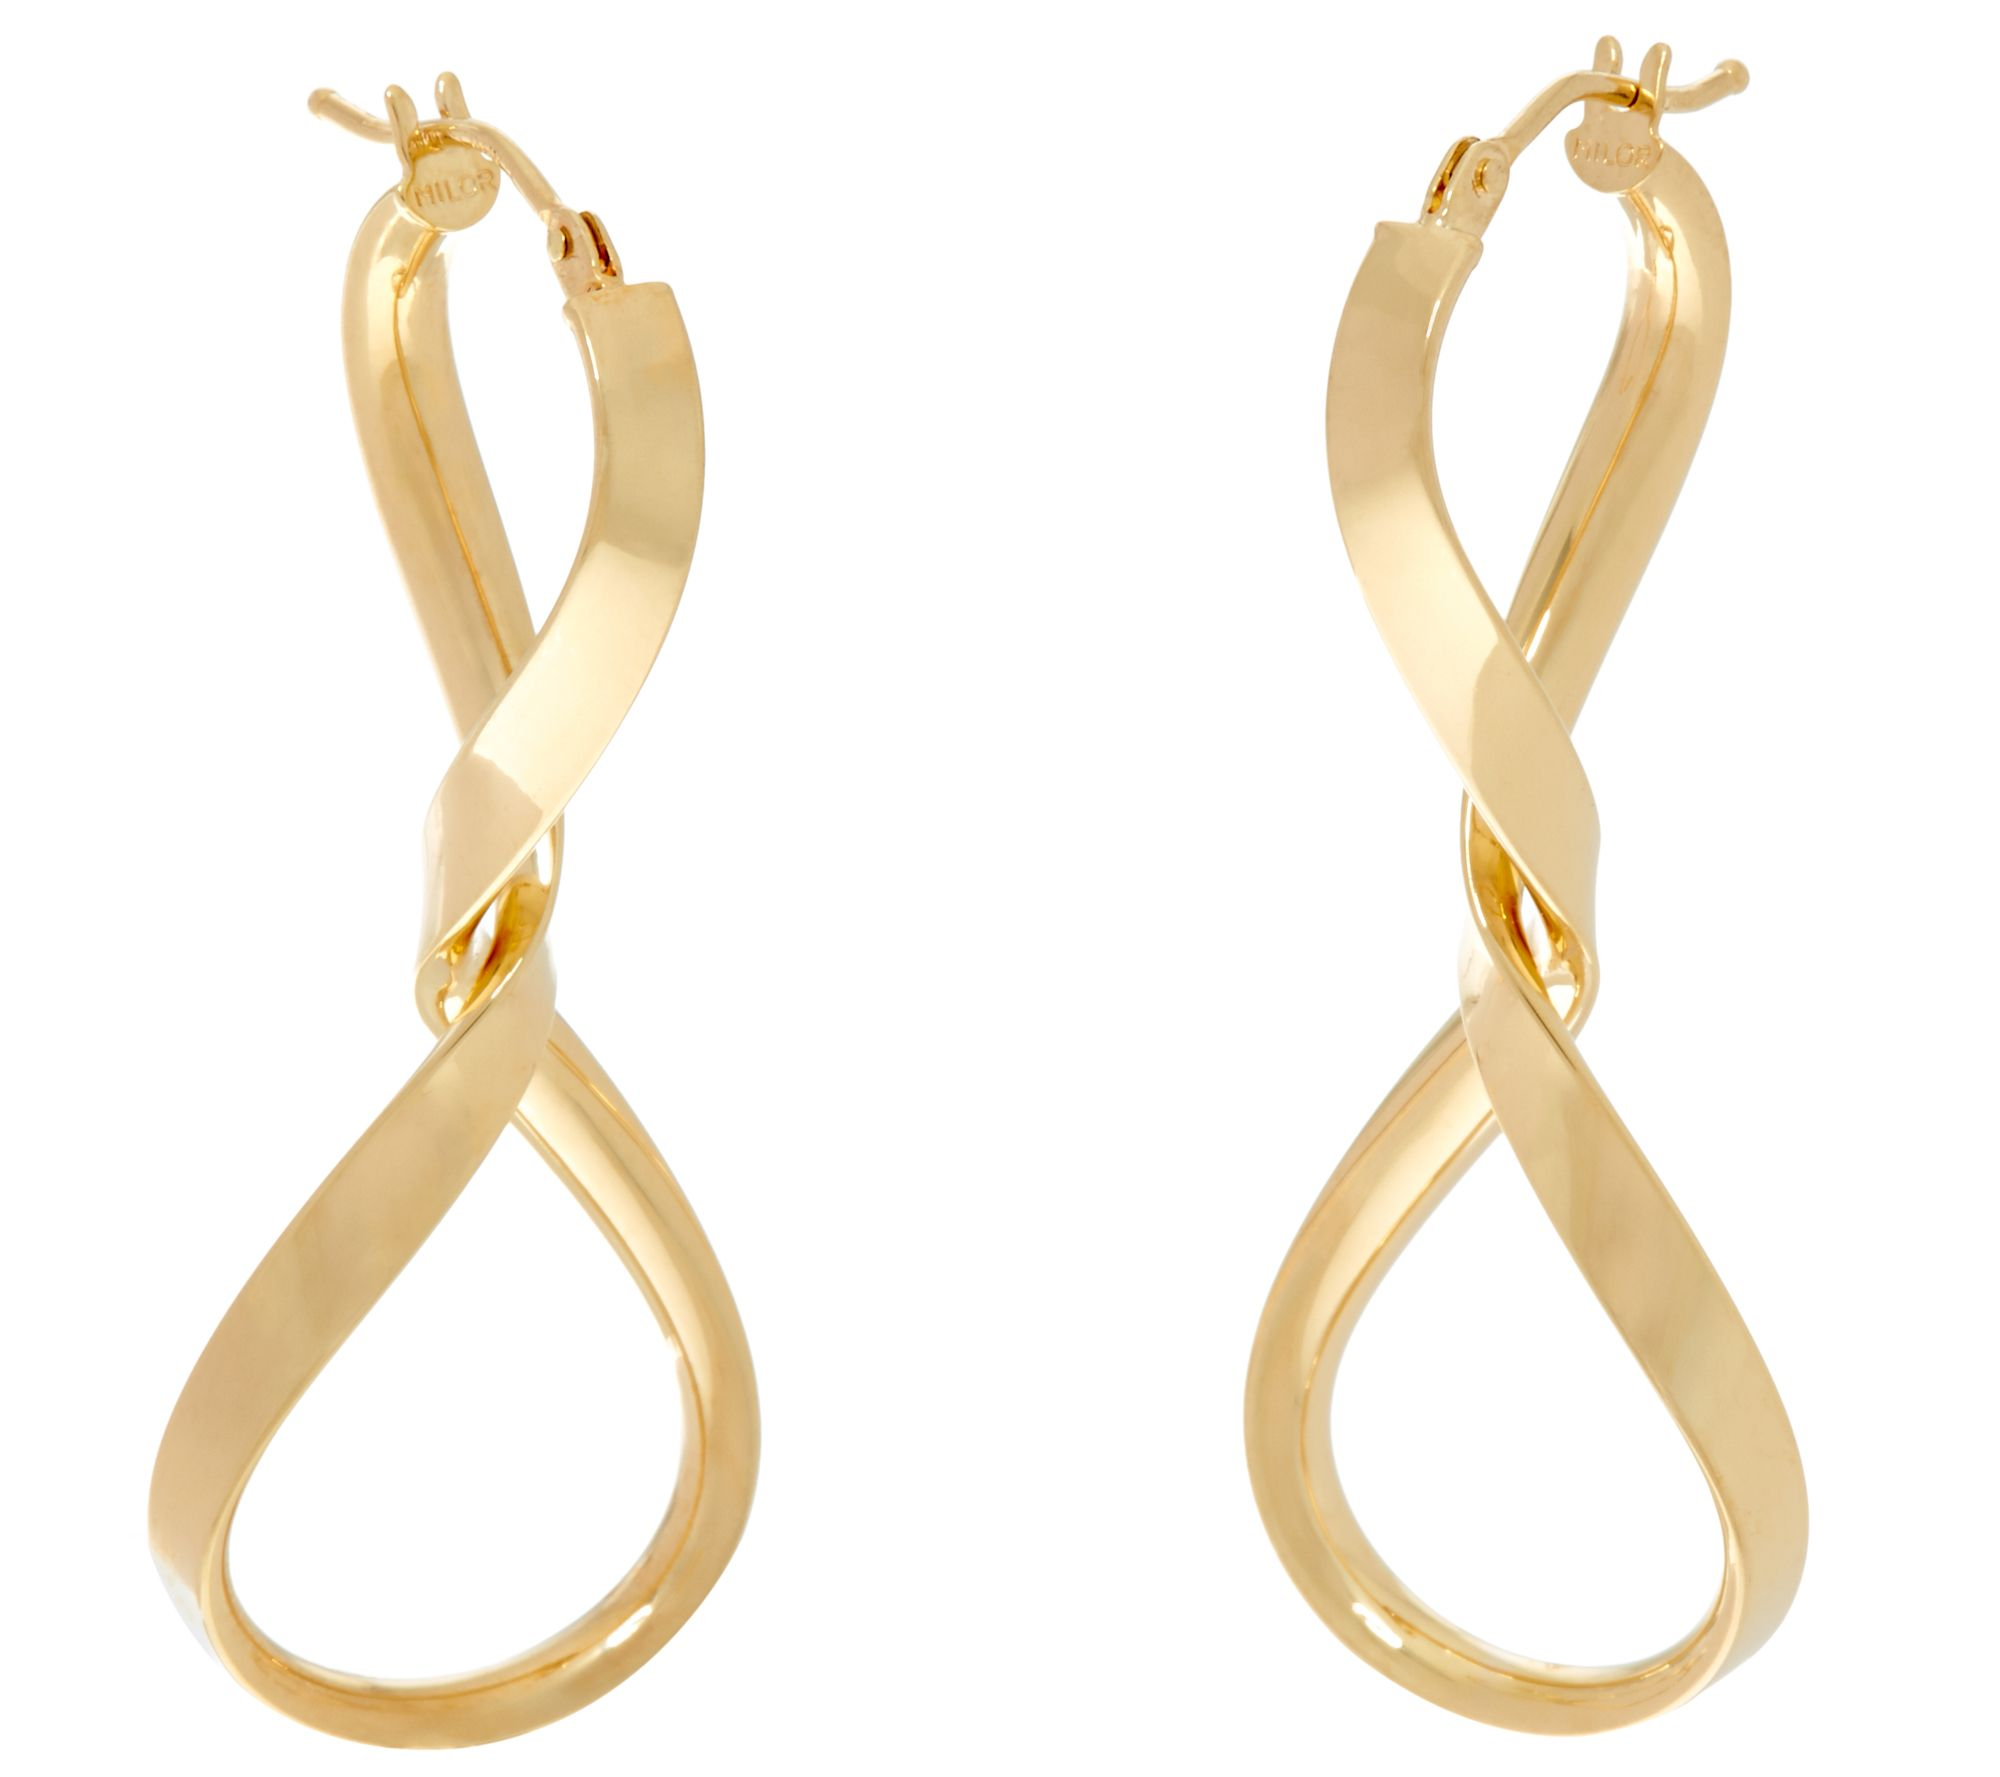 Italian Gold Twisted Hoop Earrings 14K Gold - Page 1 — QVC.com